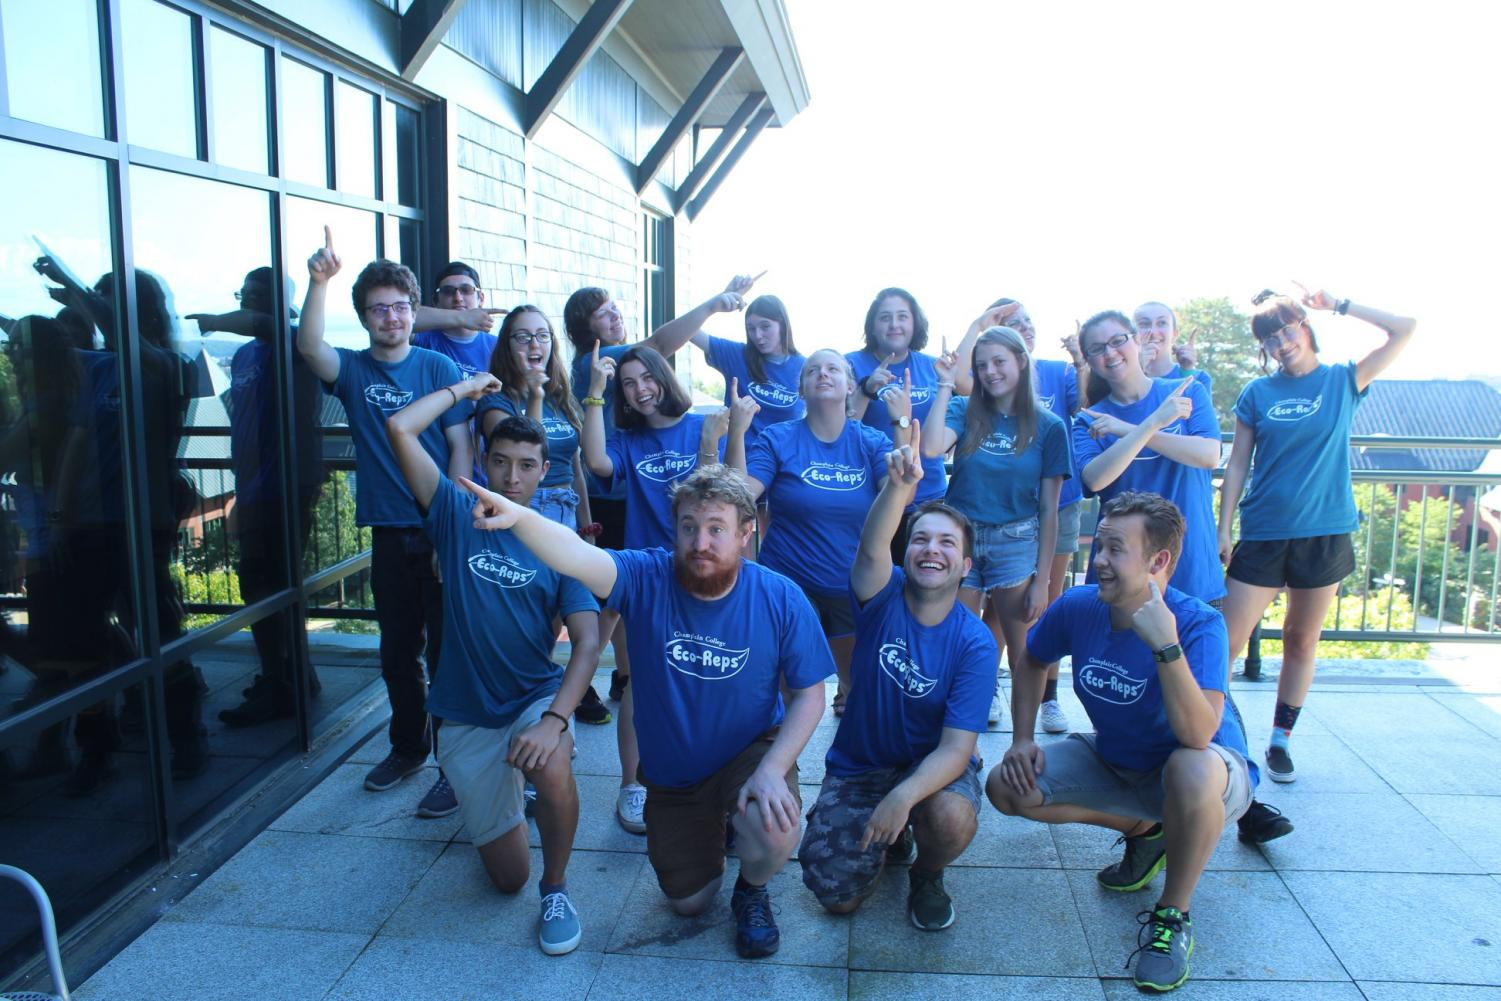 Champlain College's Eco Rep Team